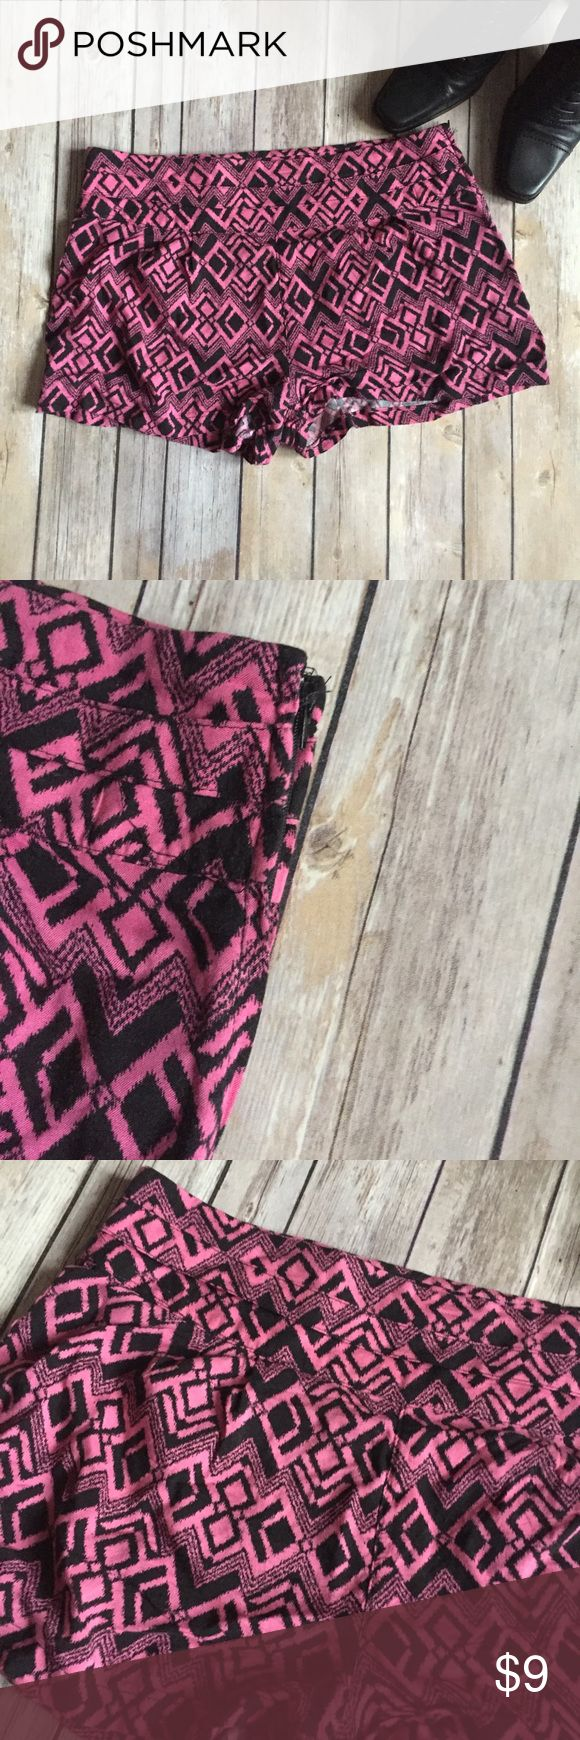 "💋 Charlotte Russe Aztec Print Shorts Size Small These shorts feel so good. If you're looking for lightweight shorts with a bold print, then these are it. Size small. 100% Rayon. 12"" Charlotte Russe Shorts"